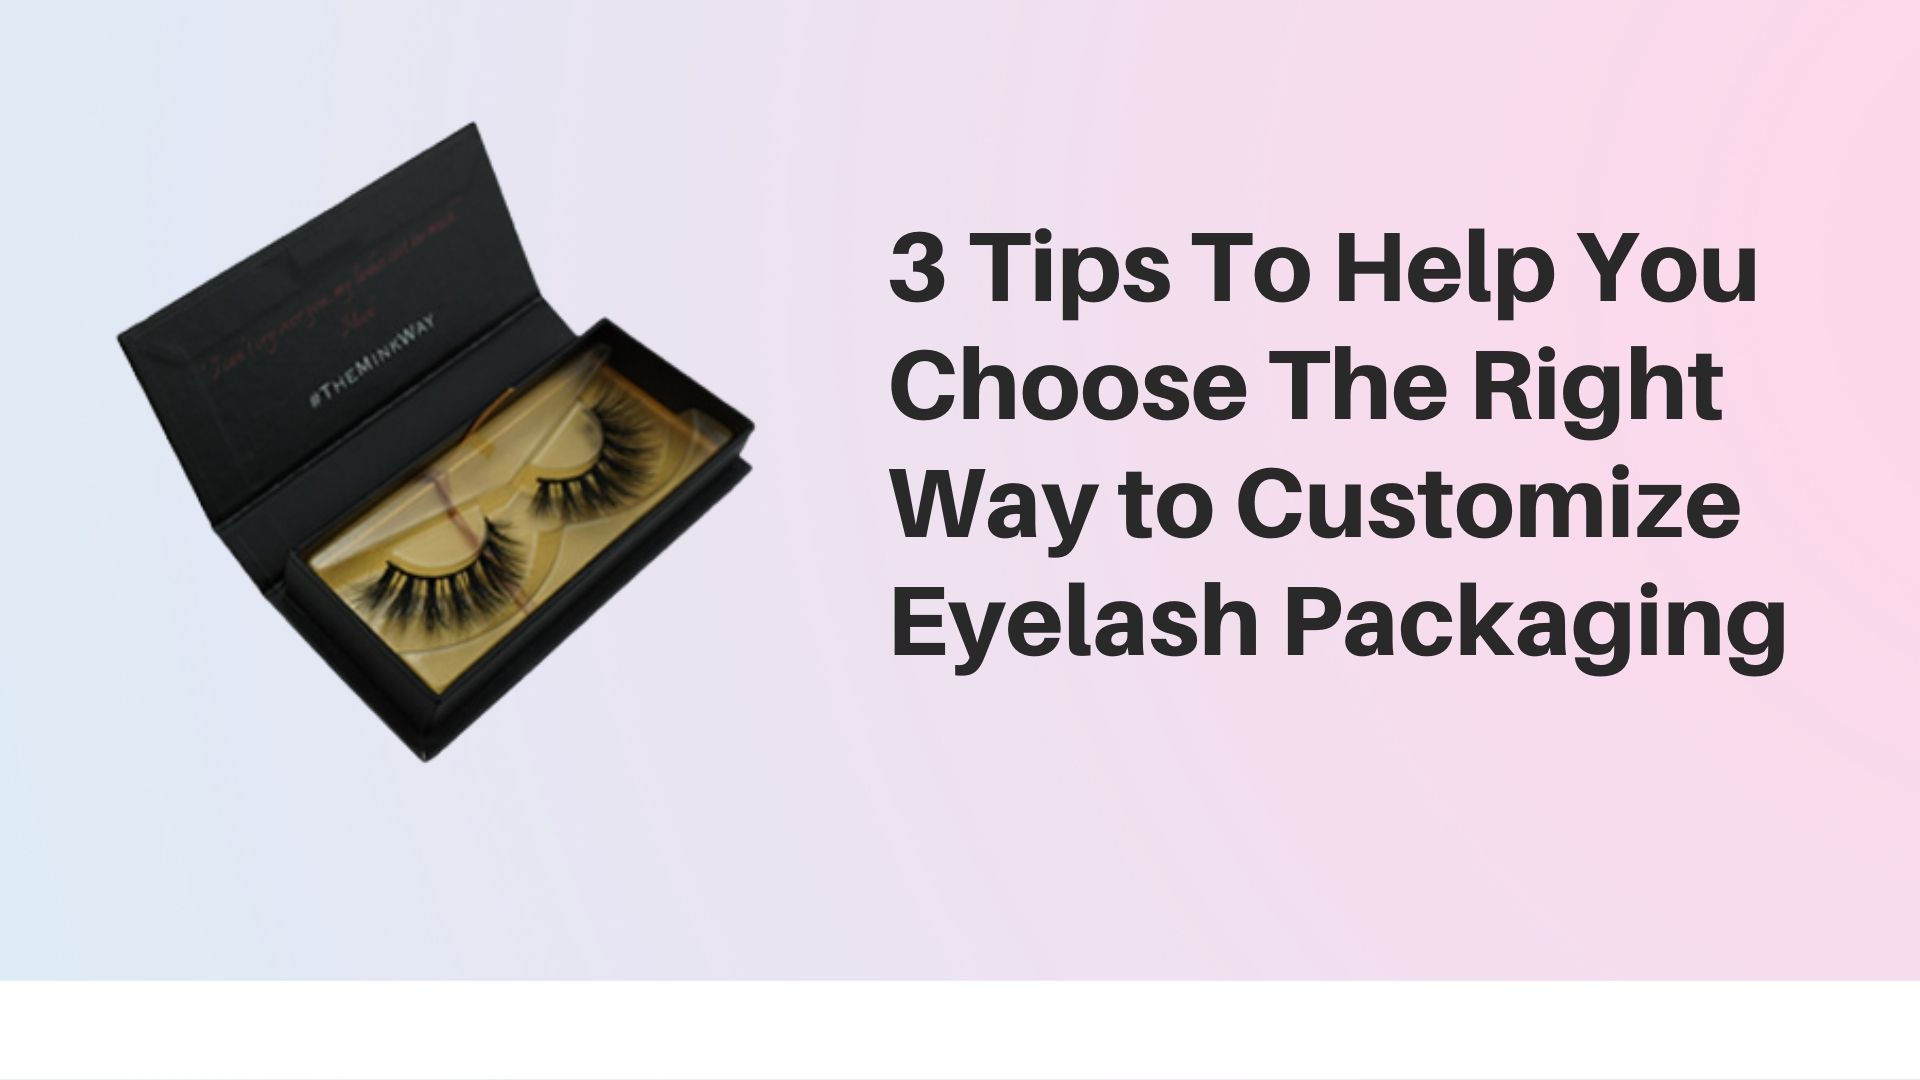 3 Tips To Help You Choose The Right Way to Customize Eyelash Packaging